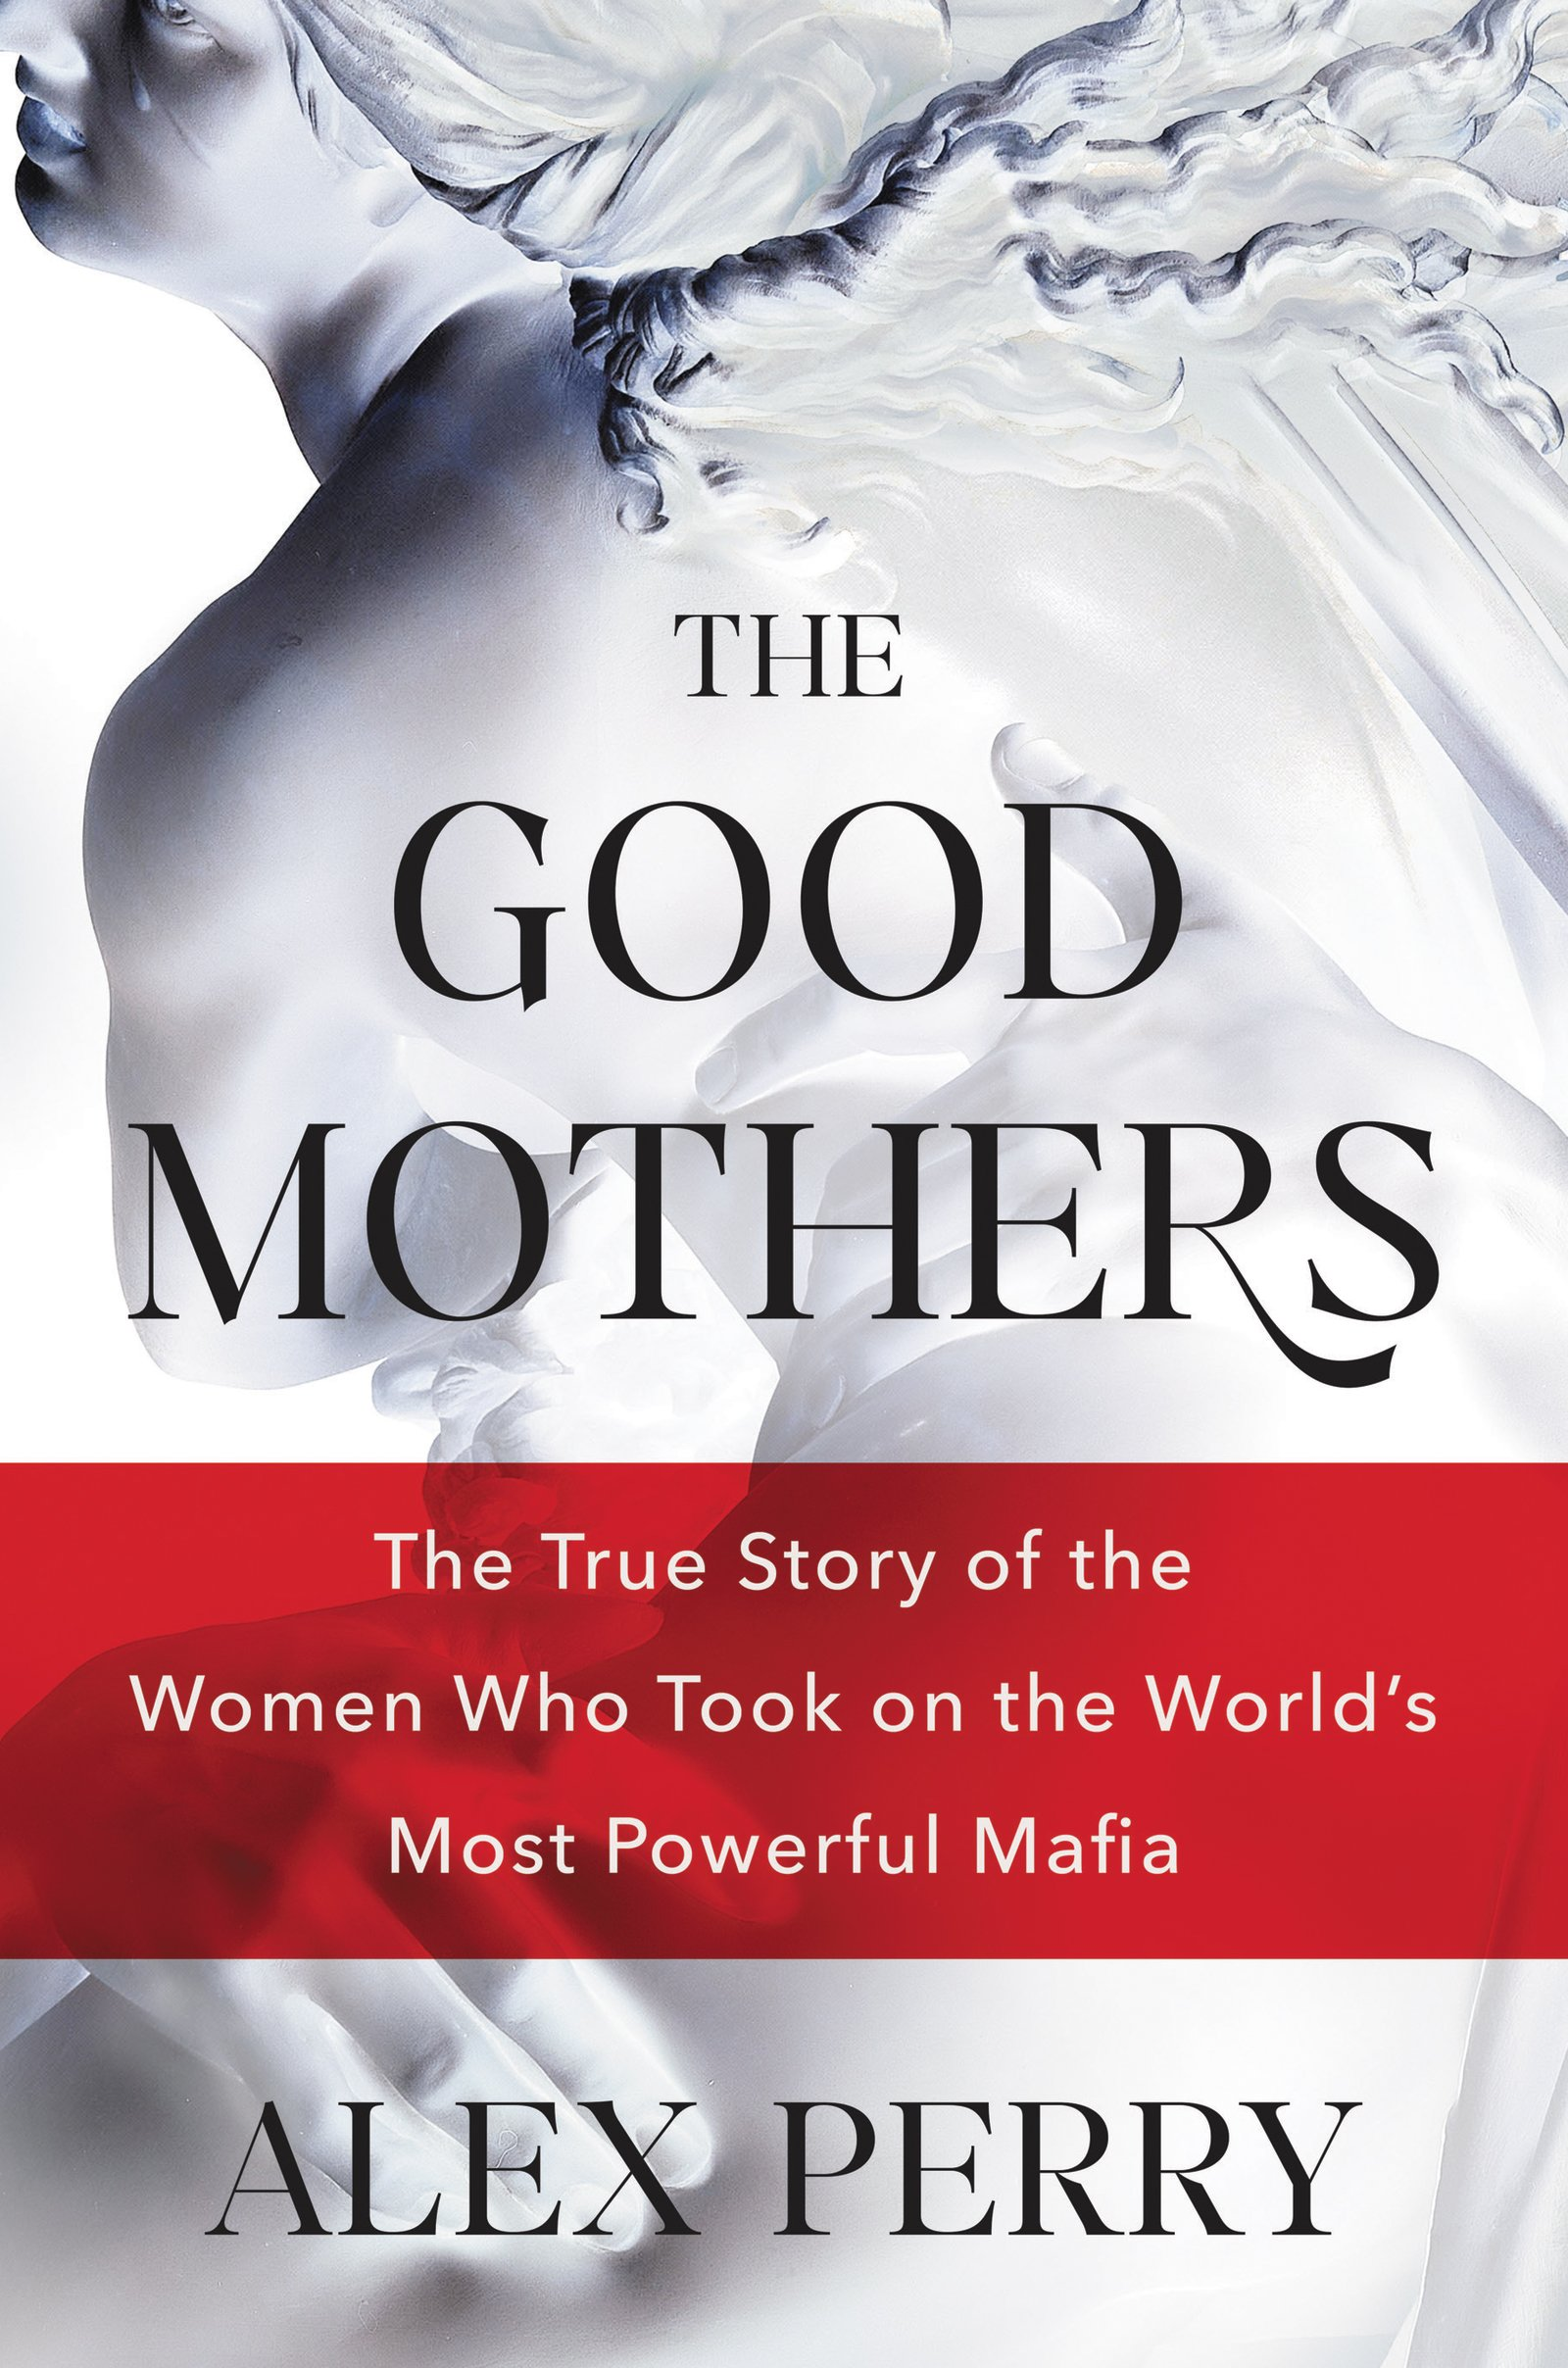 The Good Mothers  The True Story Of The Women Who Took On The World's Most Powerful Mafia  English Edition